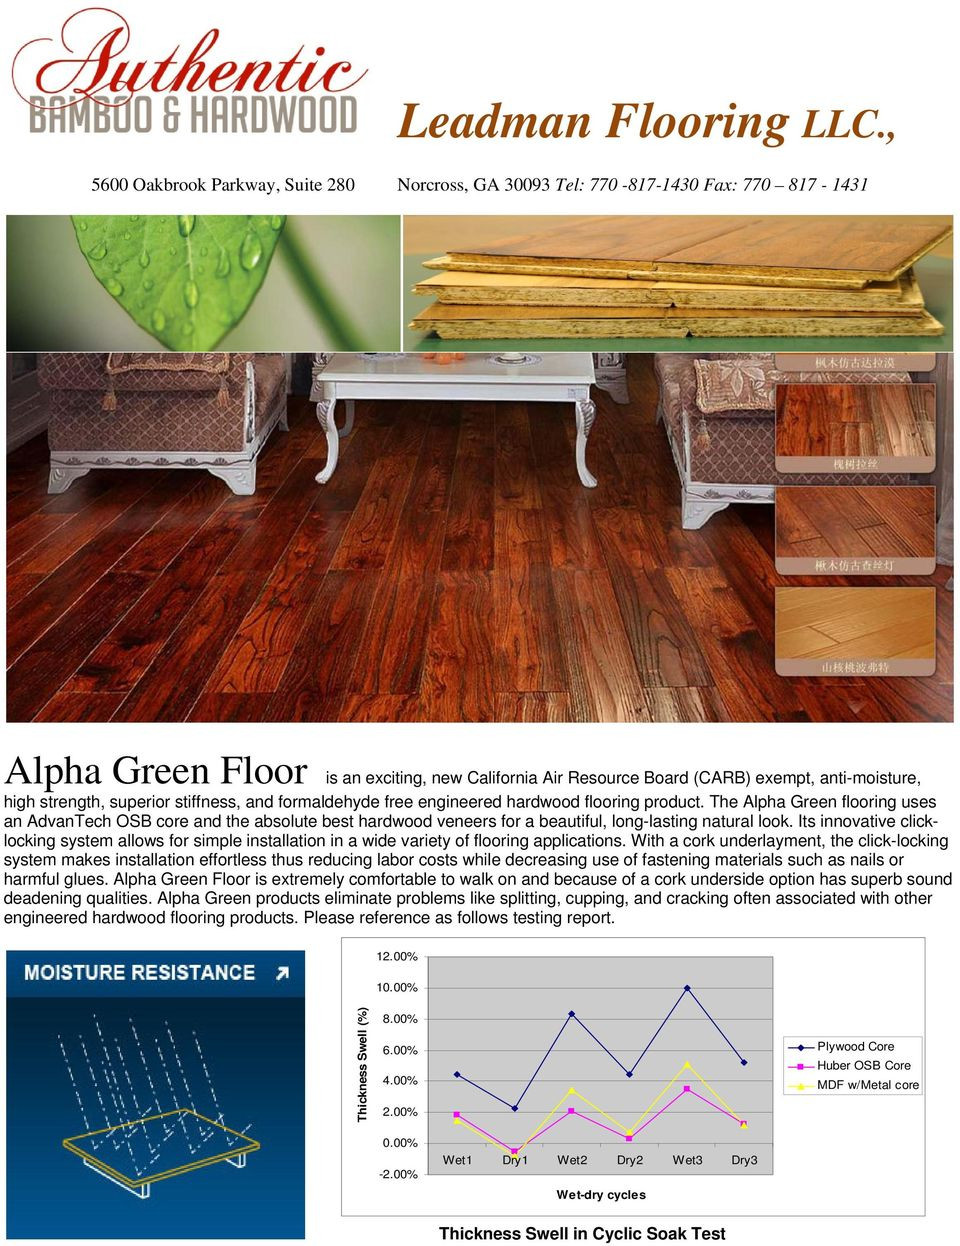 engineered hardwood flooring adhesive of leadman flooring llc pdf with strength superior stiffness and formaldehyde free engineered hardwood flooring product